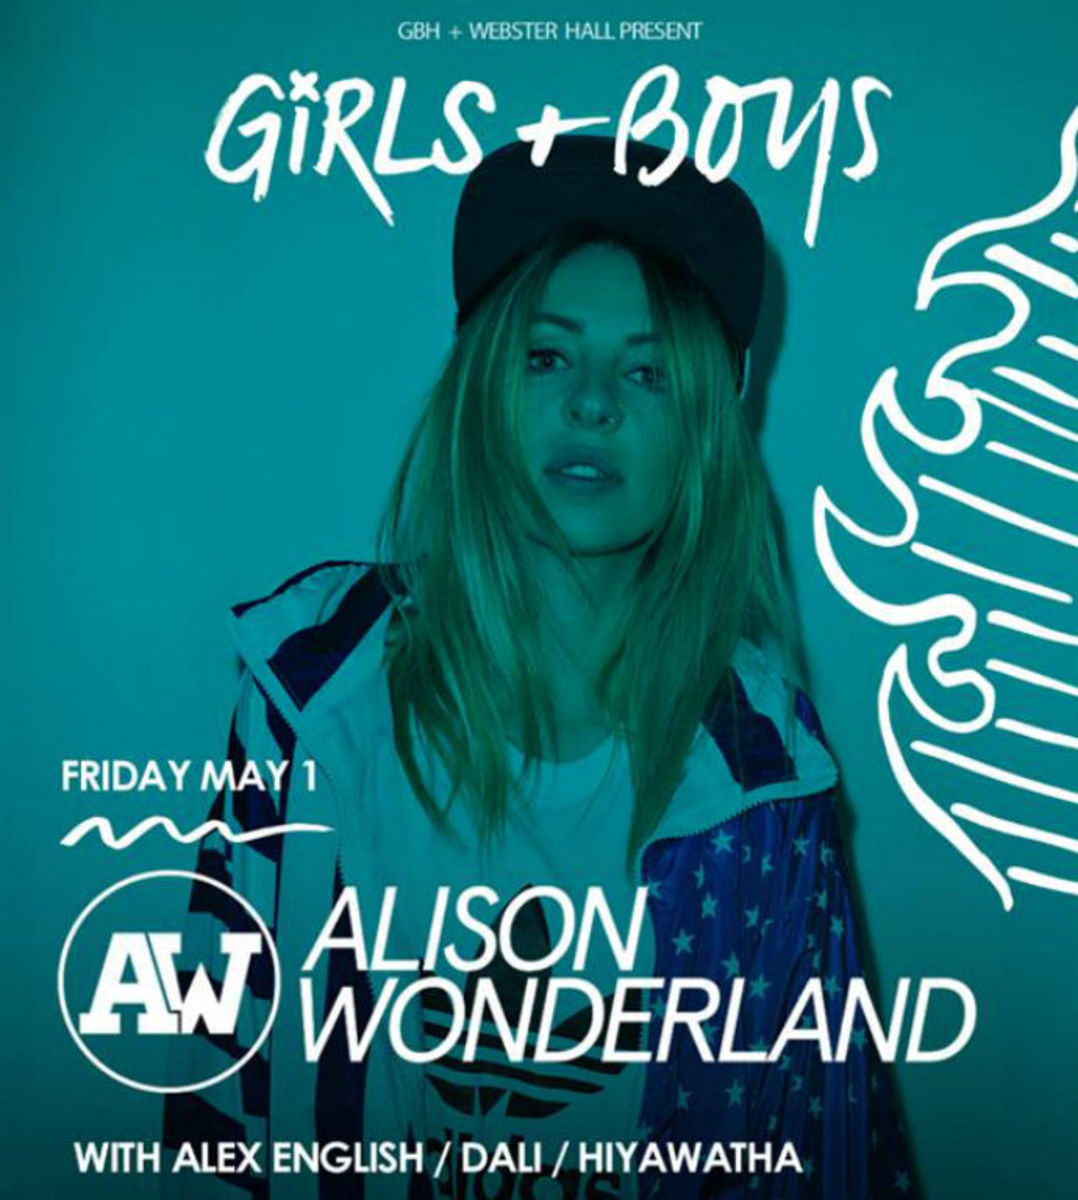 Event Spotlight: Alison Wonderland and Morgan Page at Webster Hall NYC 5/1 - 5/2